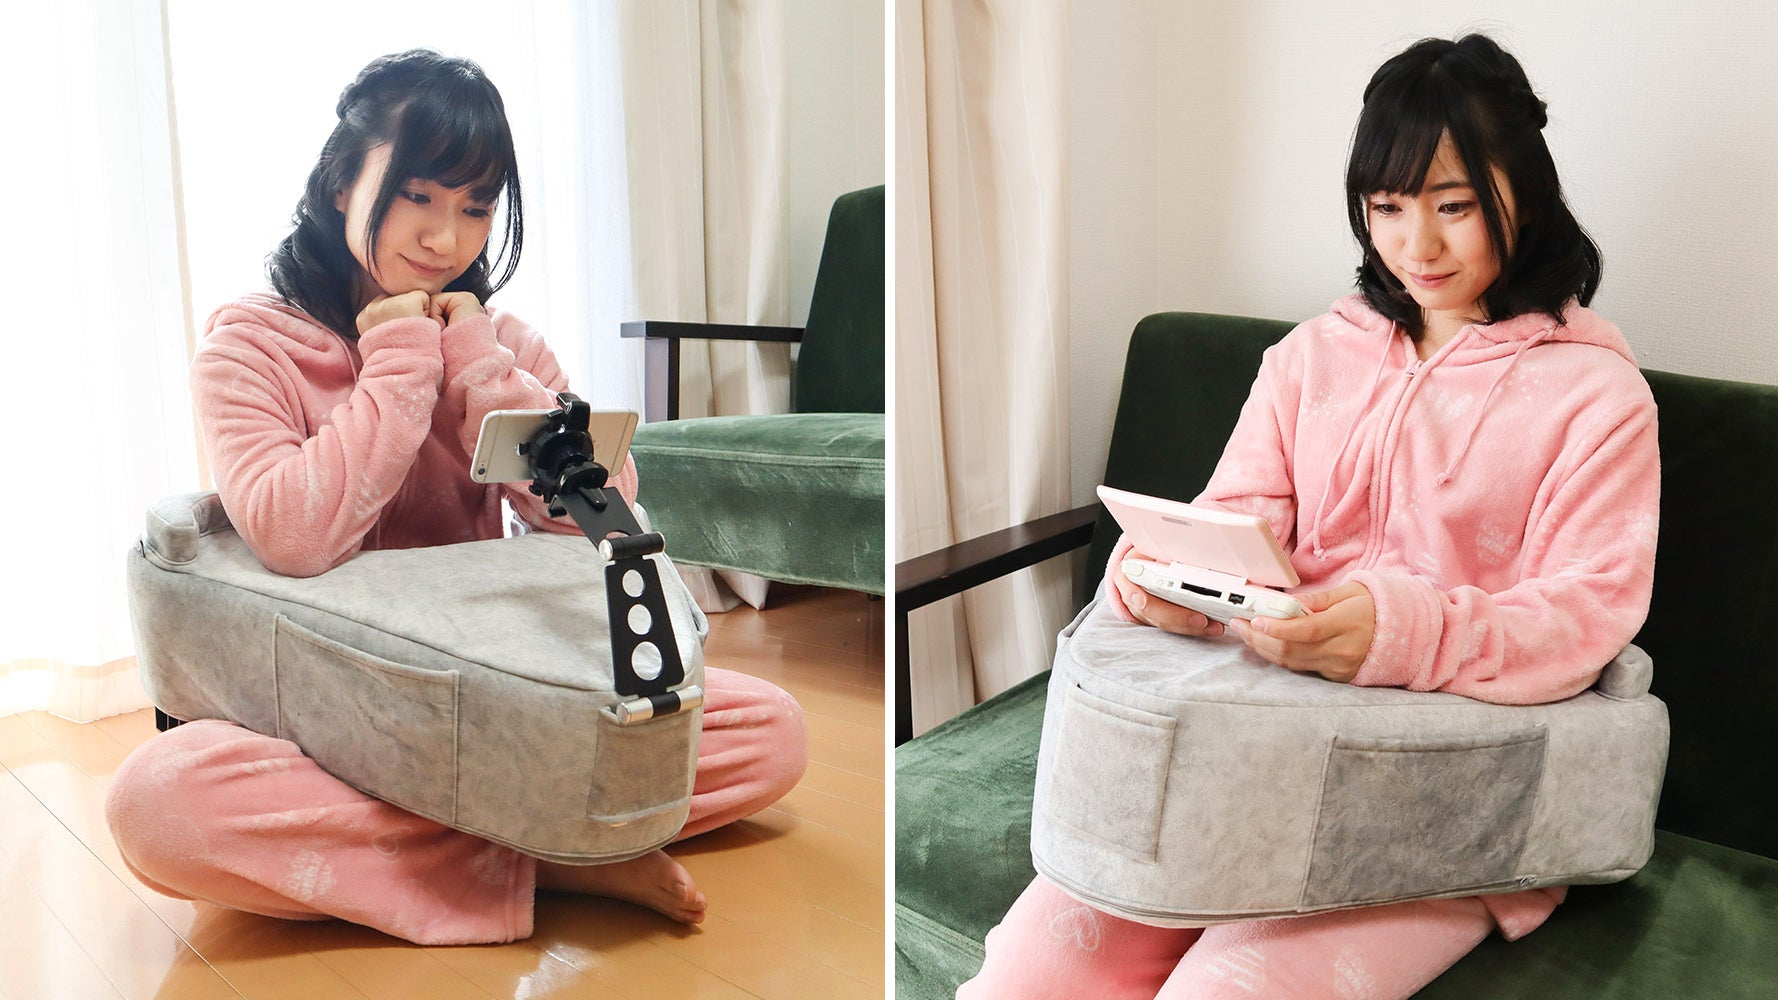 Don't Act Like This Gaming Cushion Doesn't Solve A Bunch Of Problems You Won't Admit To Having